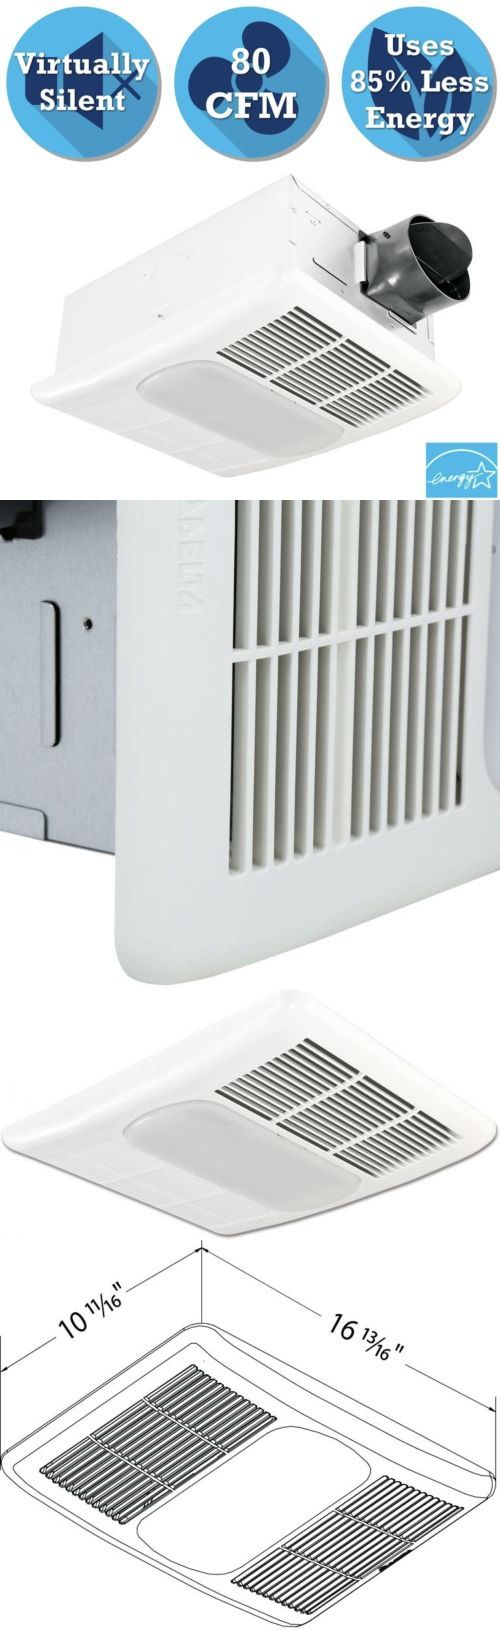 Other Home Heating and Cooling 20598: Bathroom Ceiling Exhaust Bath Fan With Light And Heater Lamp Quiet Air Ventilation -> BUY IT NOW ONLY: $109.96 on eBay!